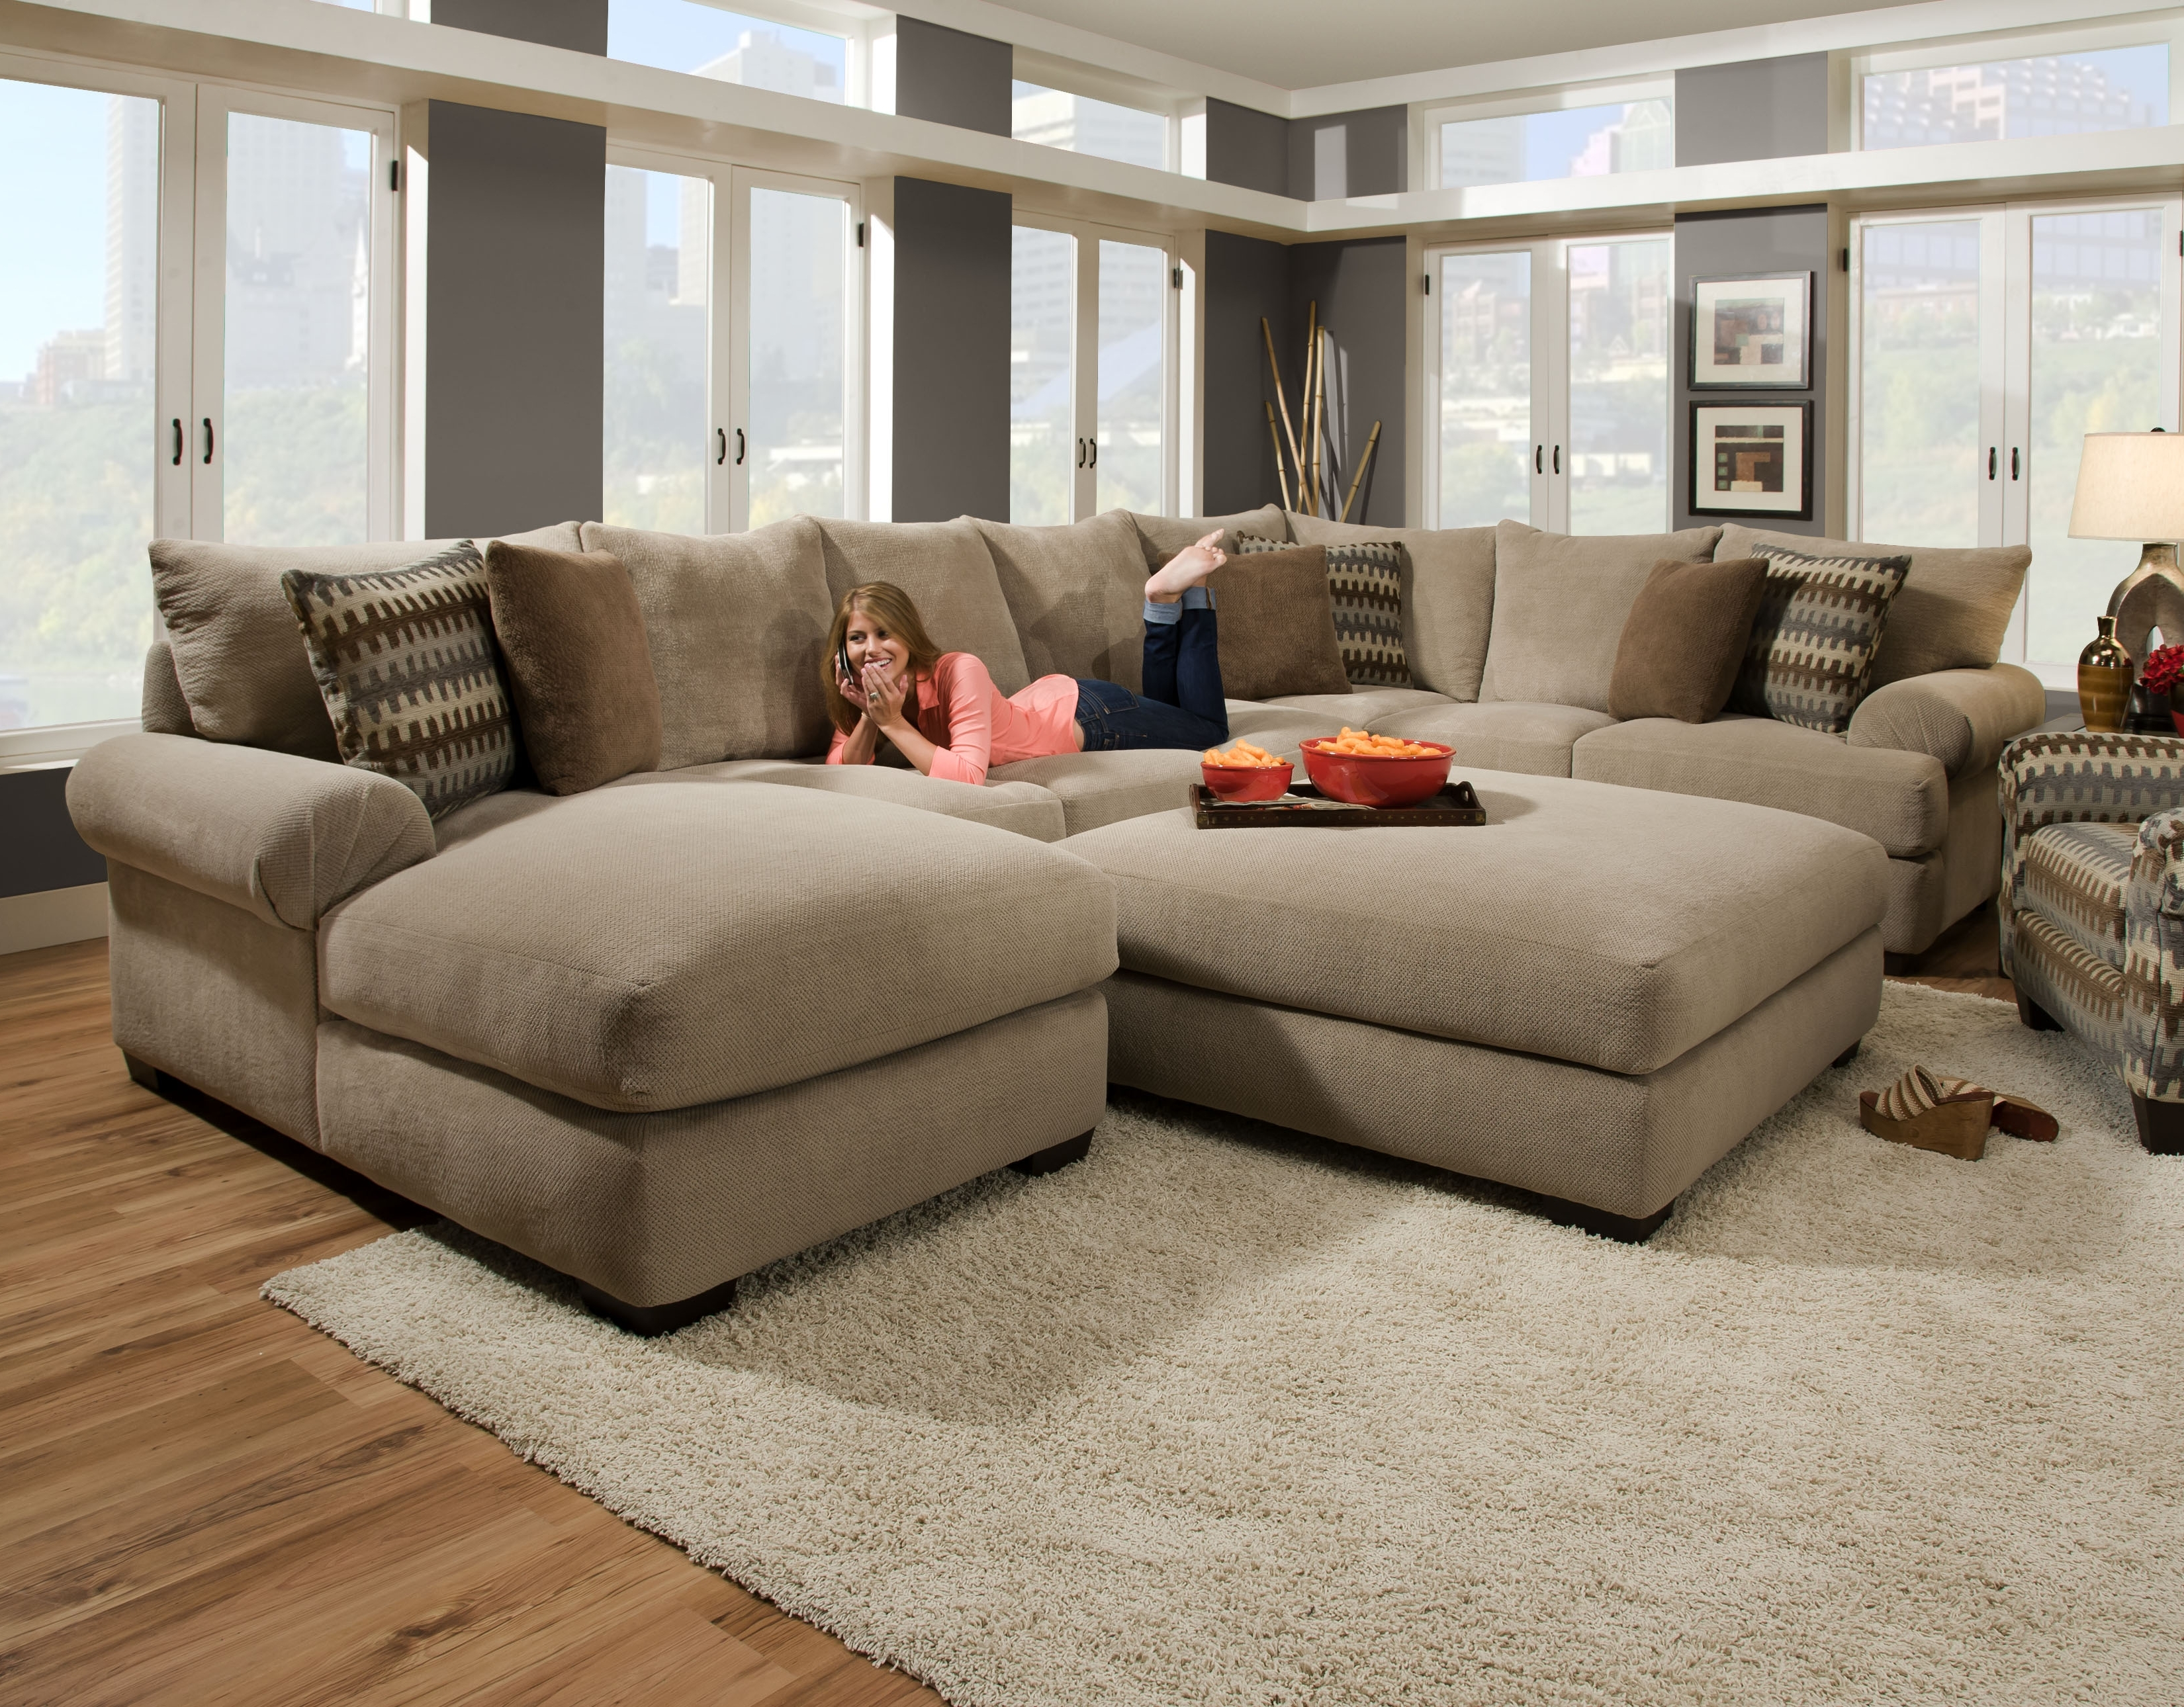 Favorite Furniture: American Freight Sectionals For Luxury Living Room With Regard To Pensacola Fl Sectional Sofas (View 4 of 20)